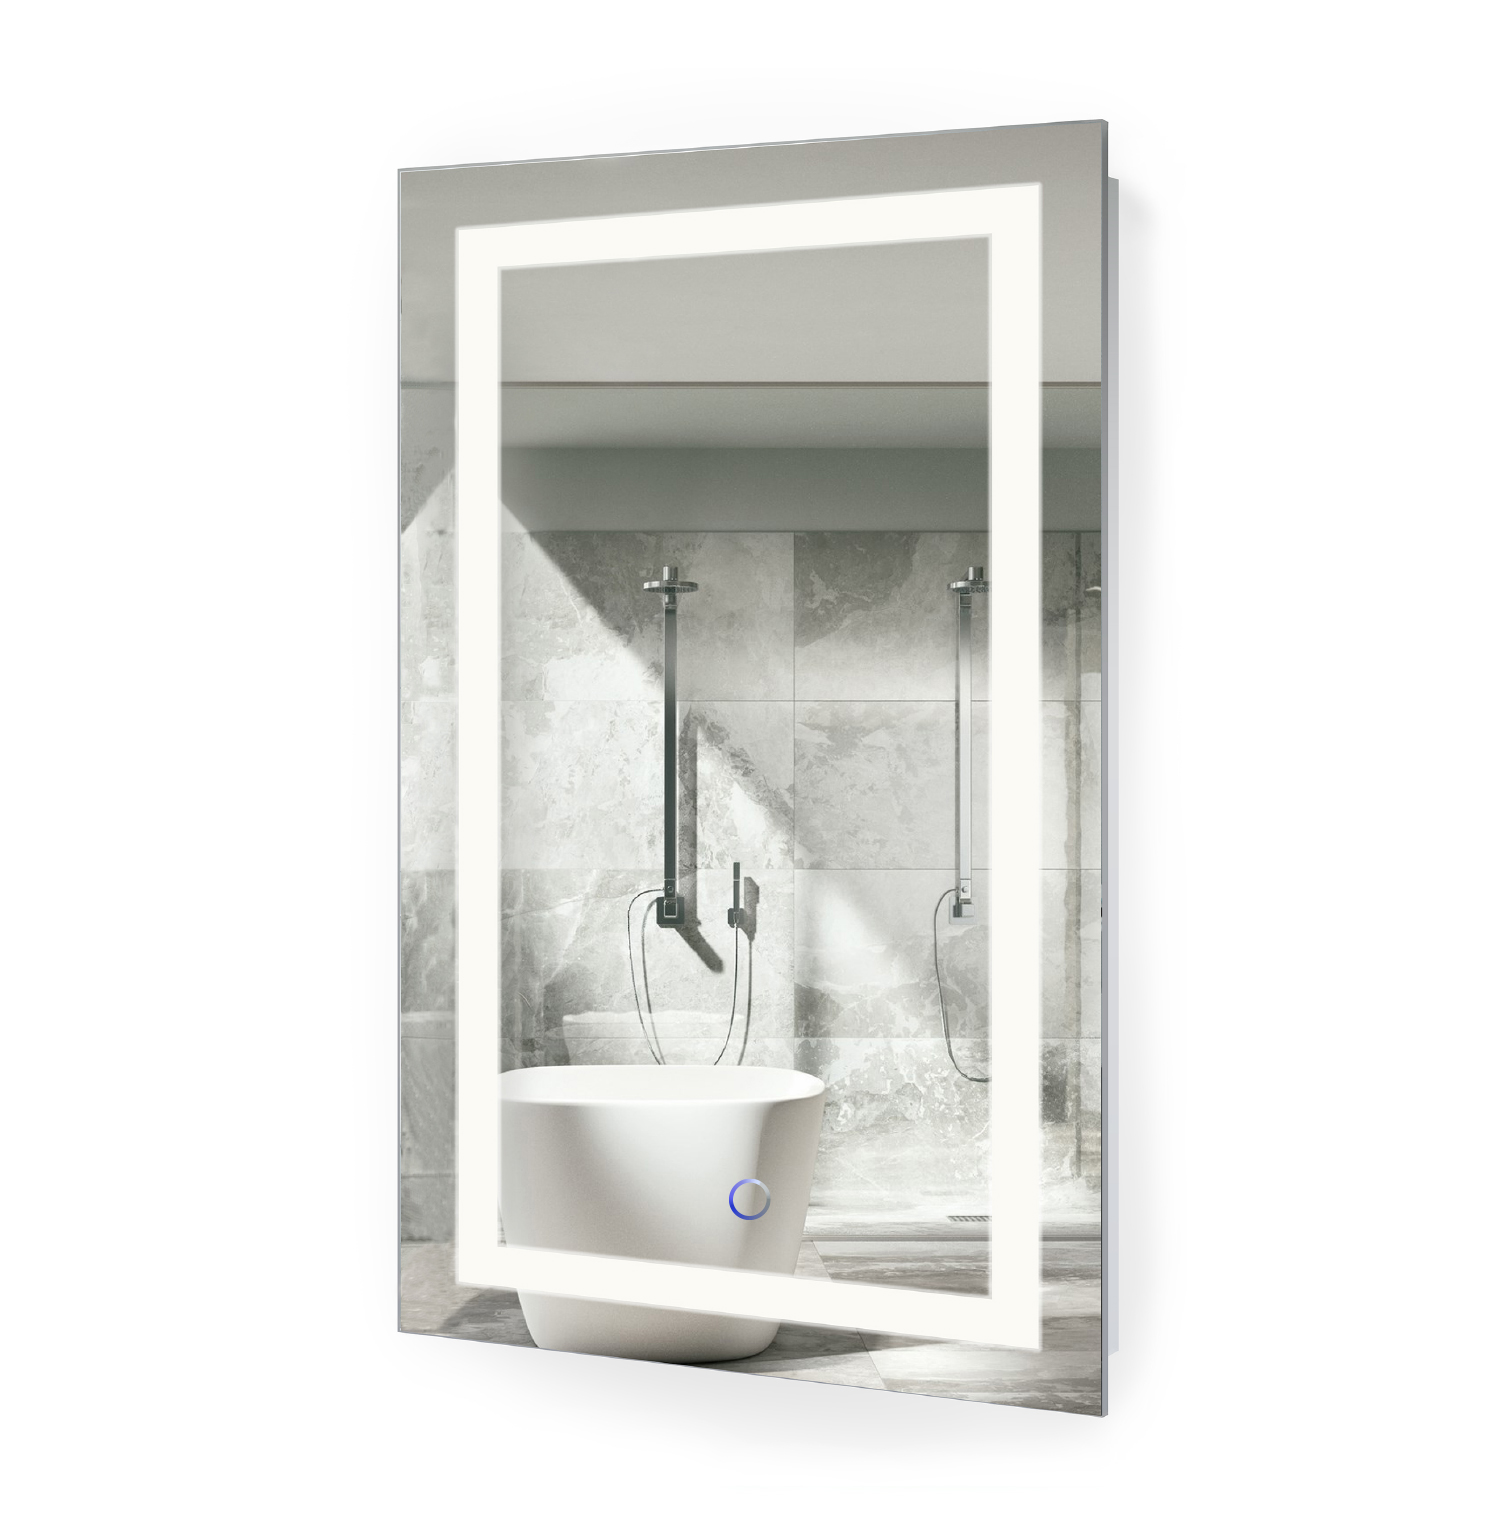 LED Vanity Mirror 20″x32″ Bathroom Lighted Mirror With Dimmer ...